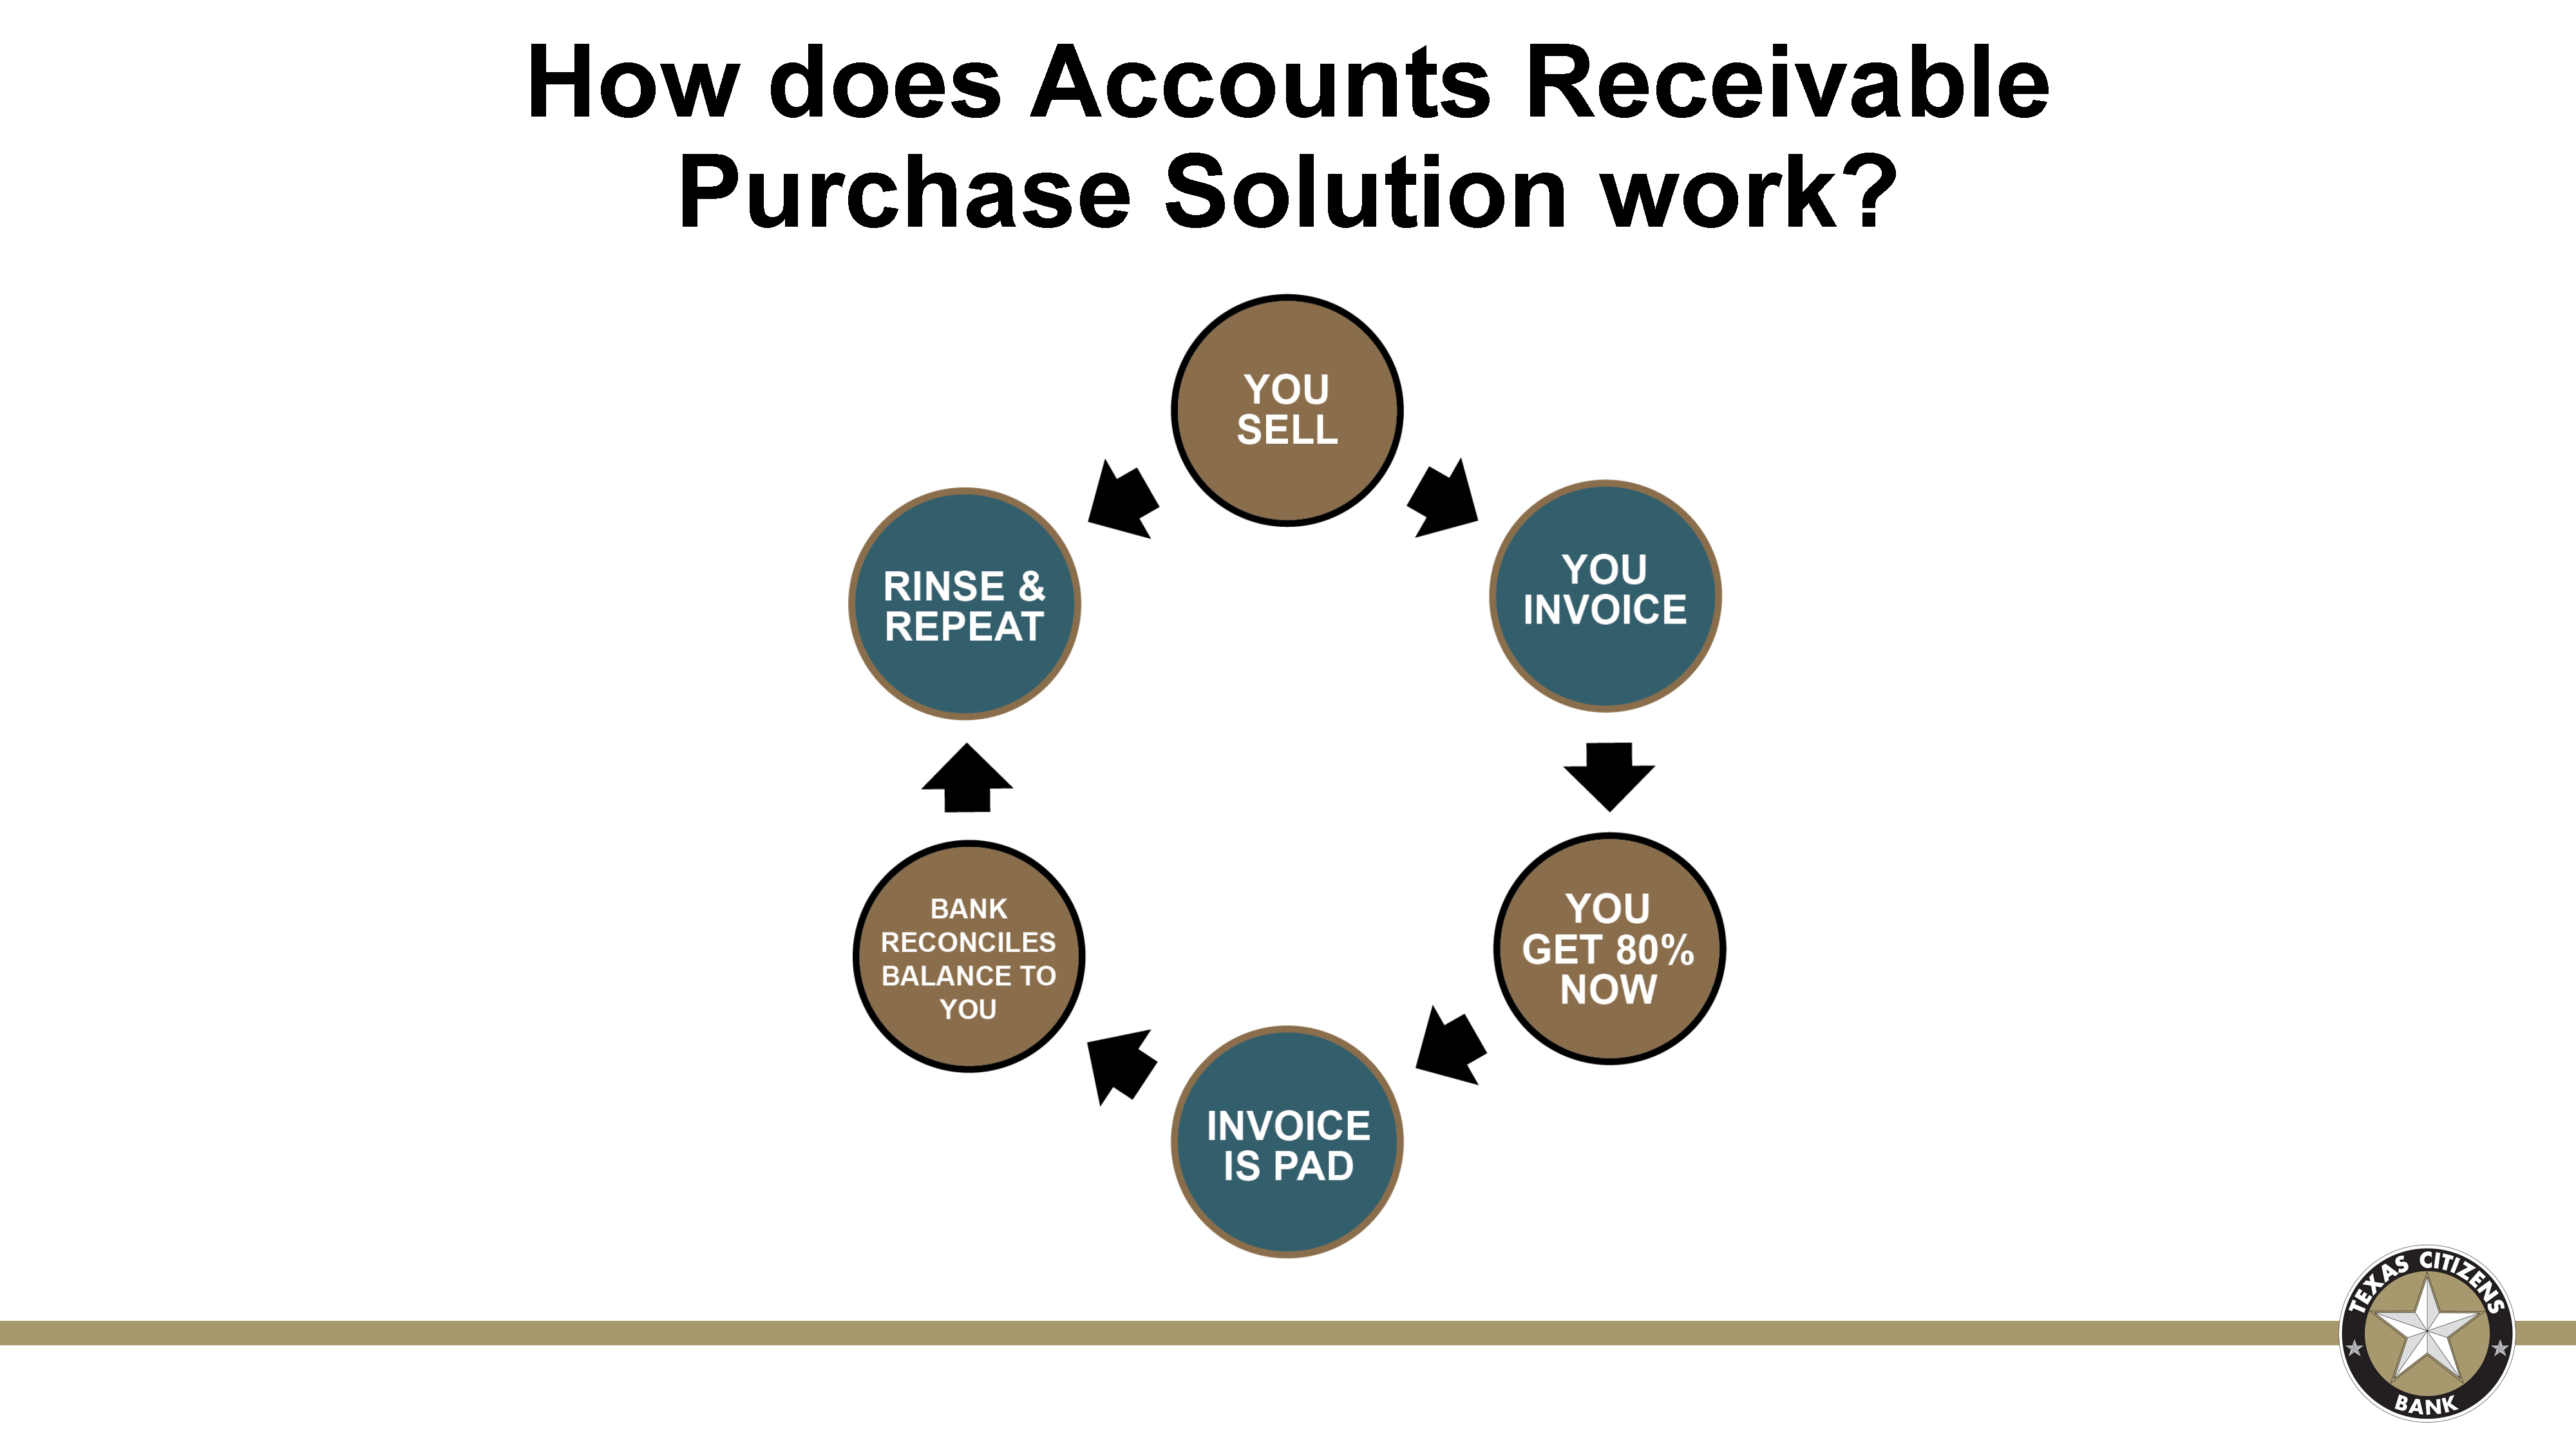 Accounts Receivable Purchase Solution Houston, Texas